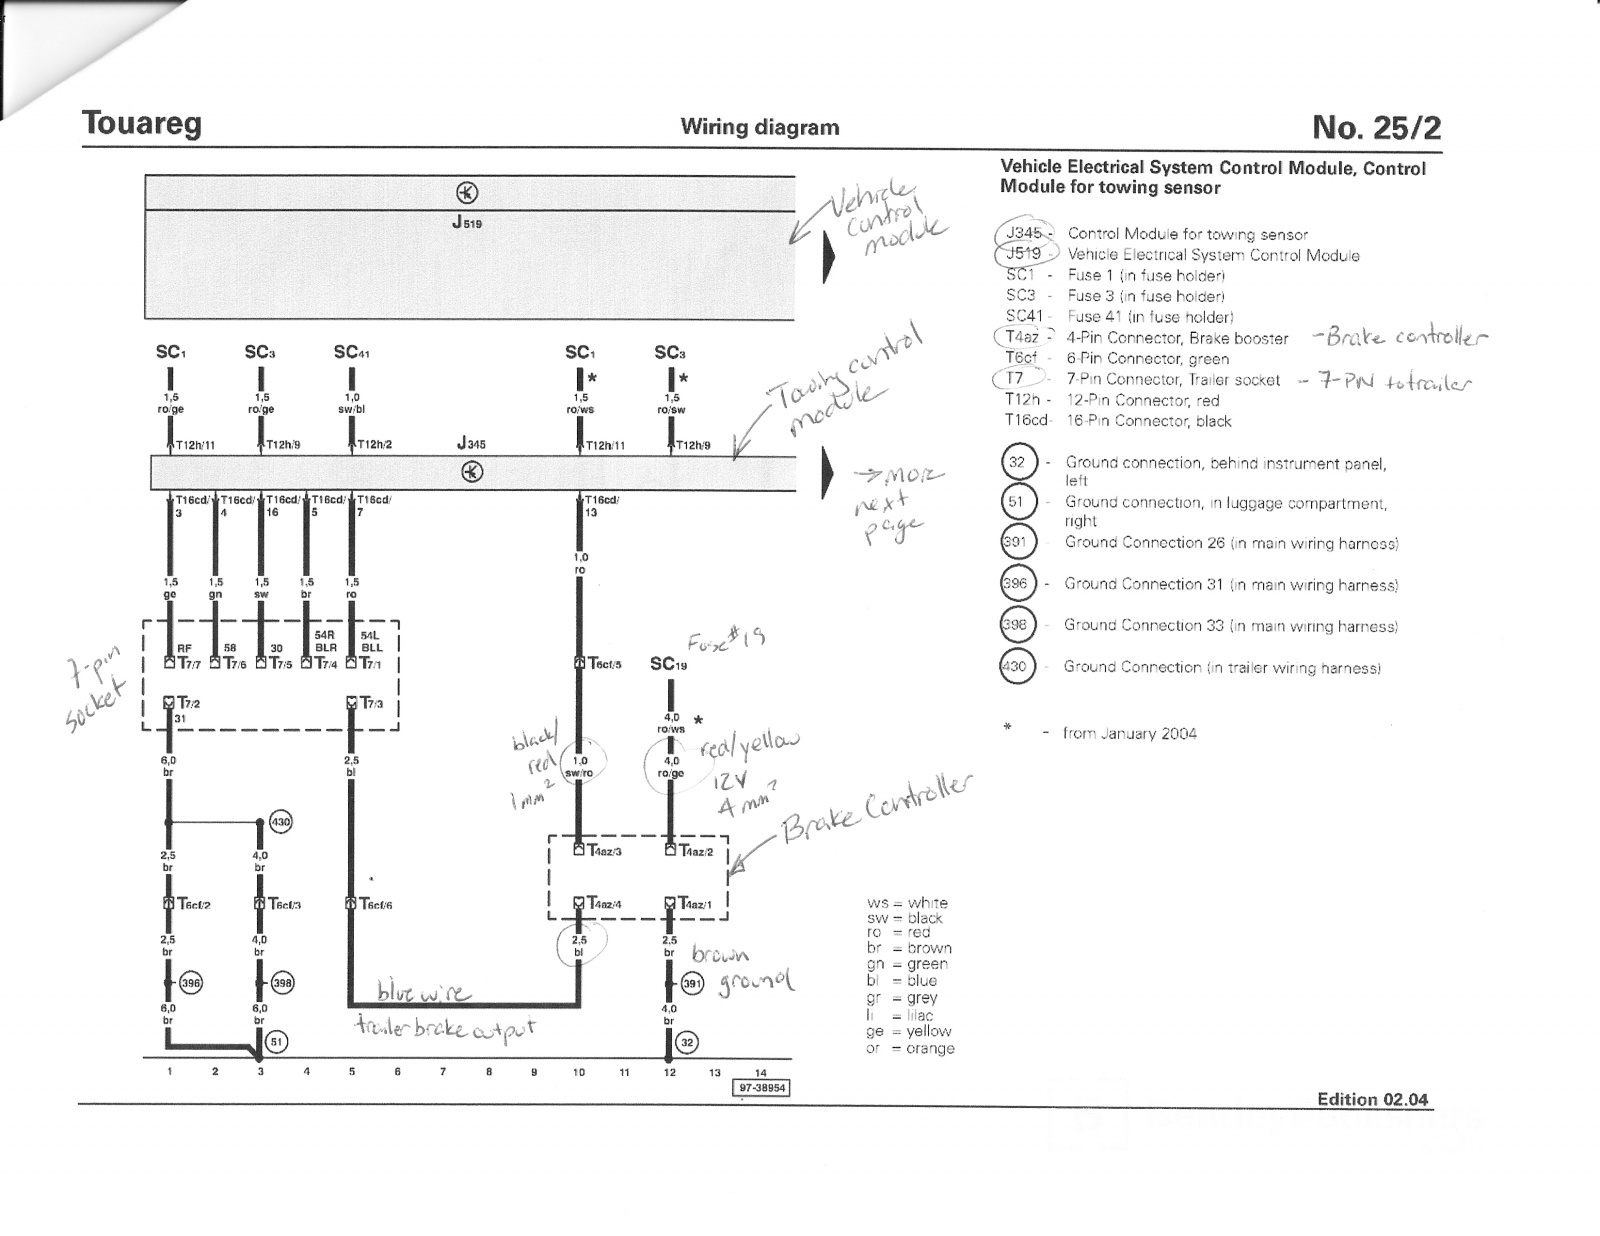 tracing wiring diagram with Touareg Wiring Diagram For Towbar Connections 75409 on Play Car Motor additionally Mat Course Module Three S le Page moreover Psi Ls1 Wiring Harness in addition 29533 Big 40 Idle Control Issues What S This Thingy moreover Easy Carnation Flower Drawings.